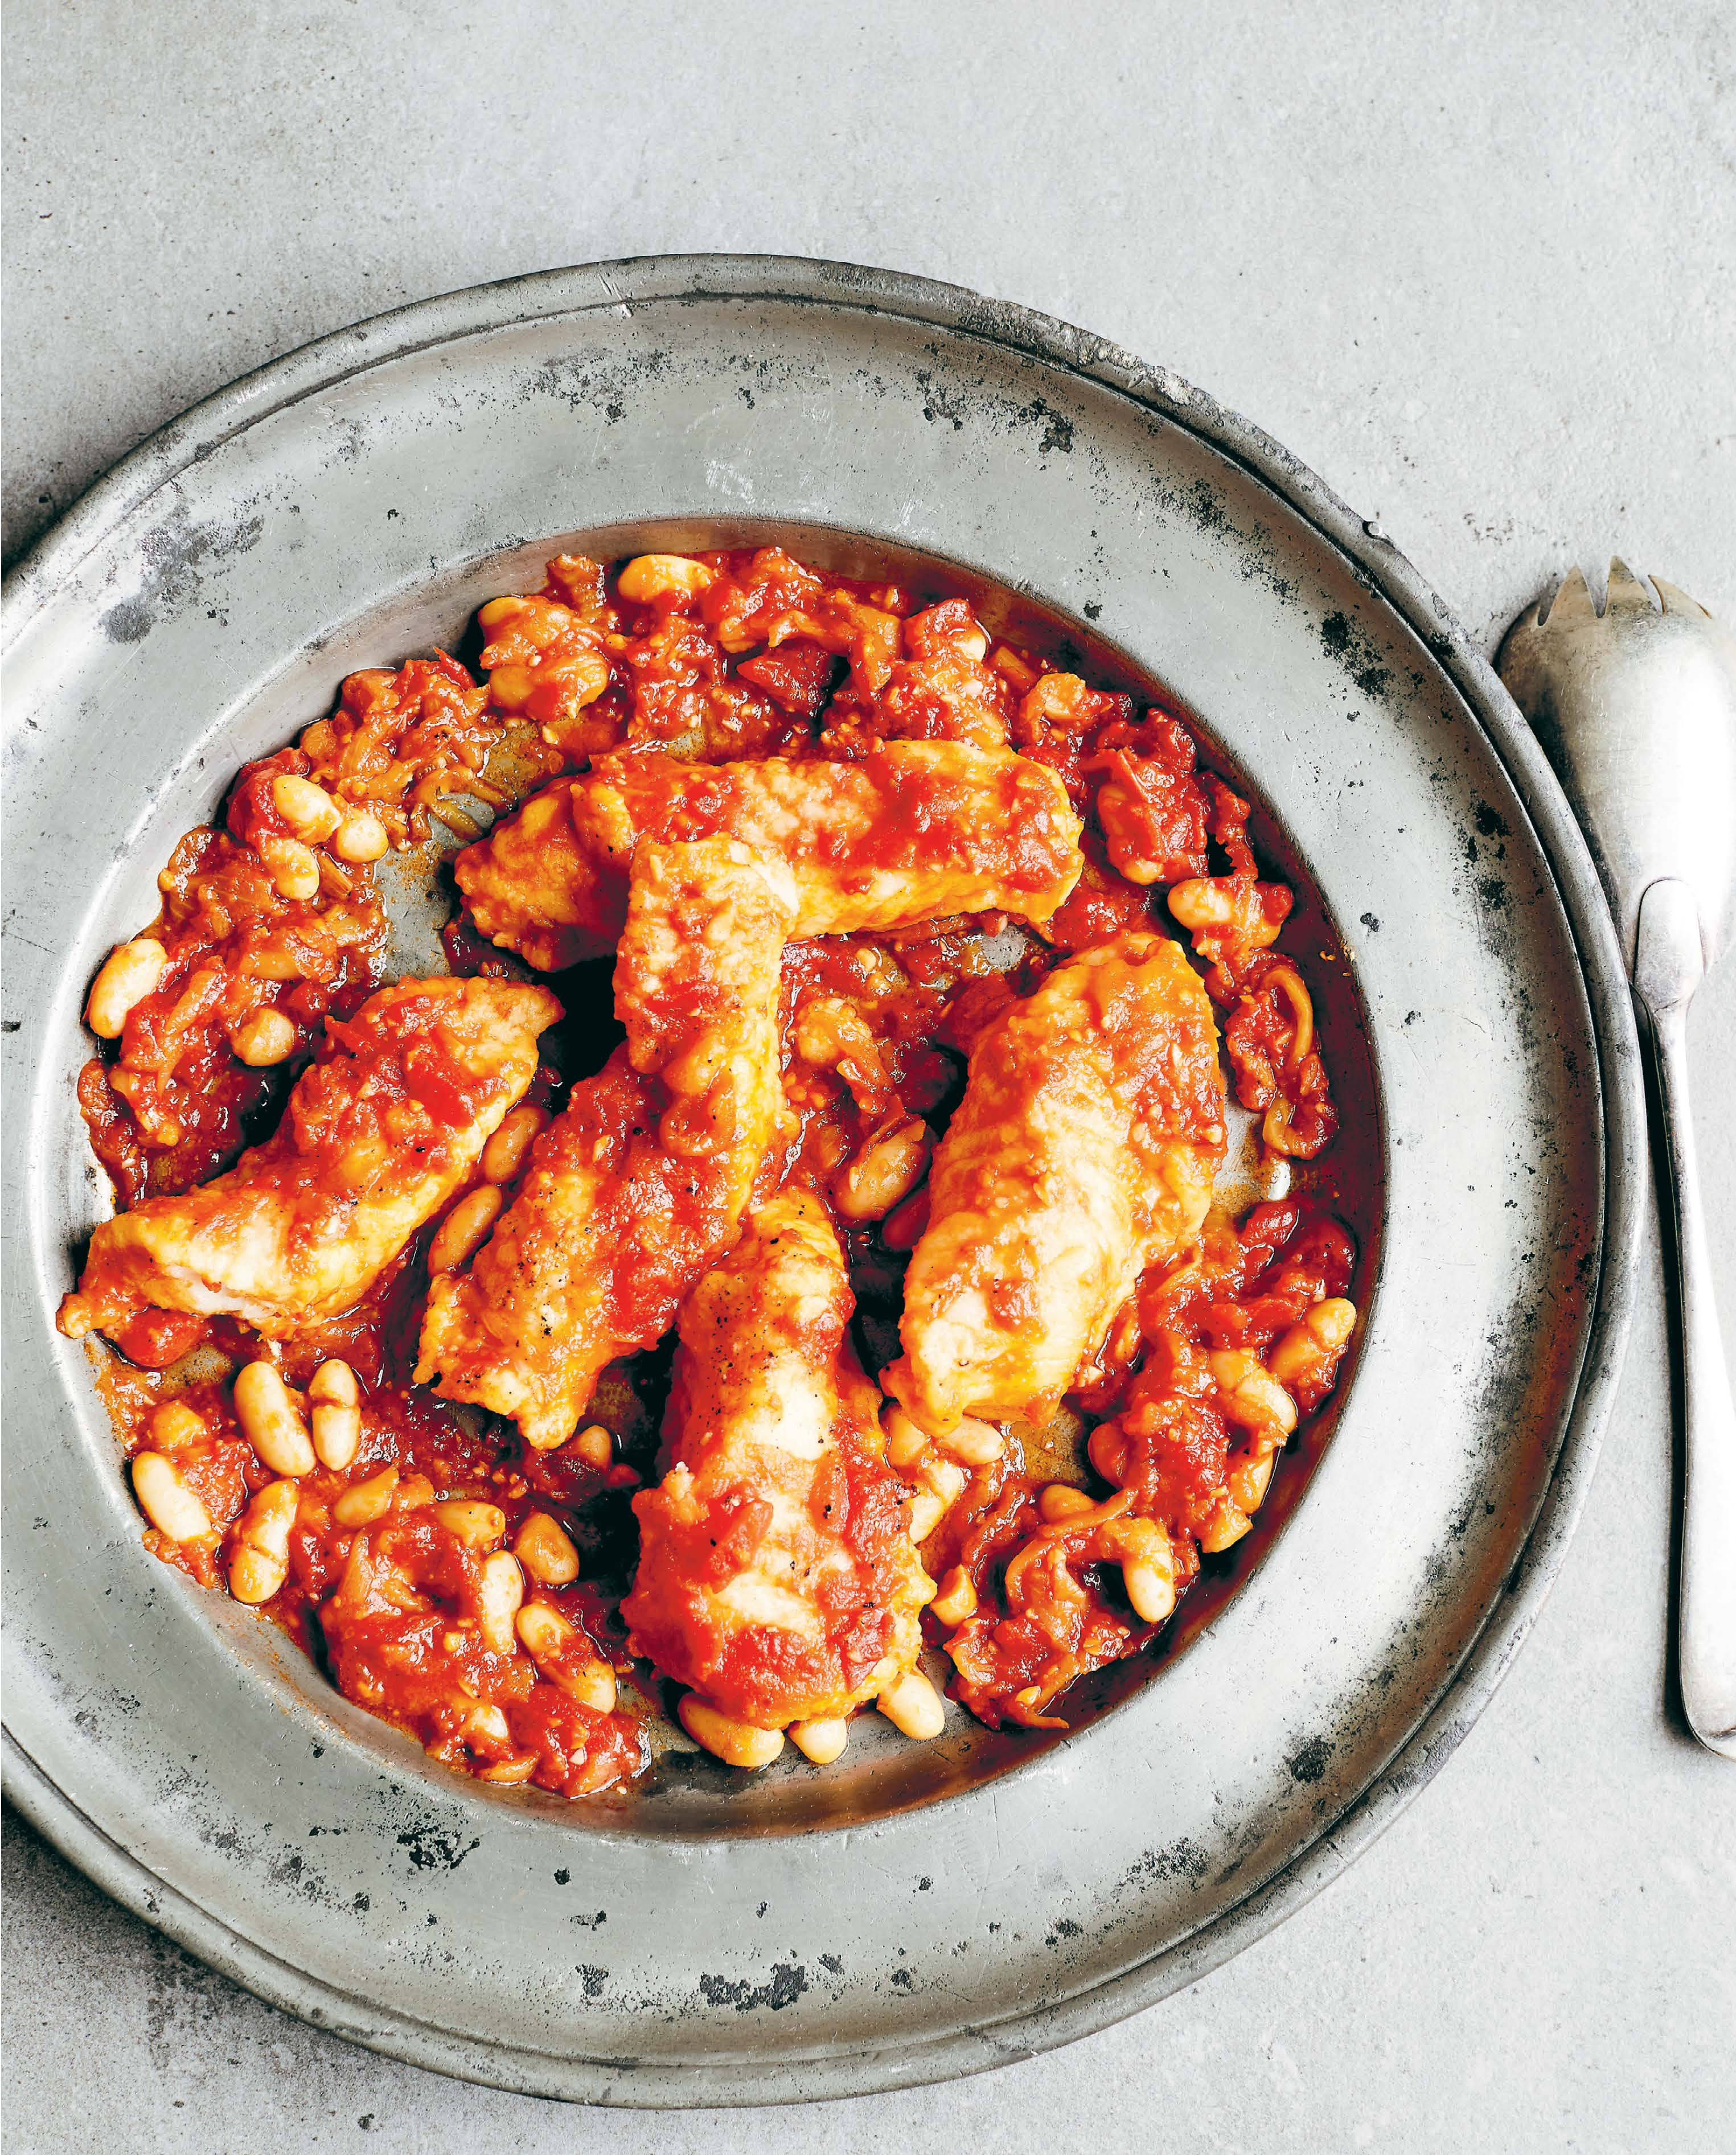 Monkfish baked with tomato and beans